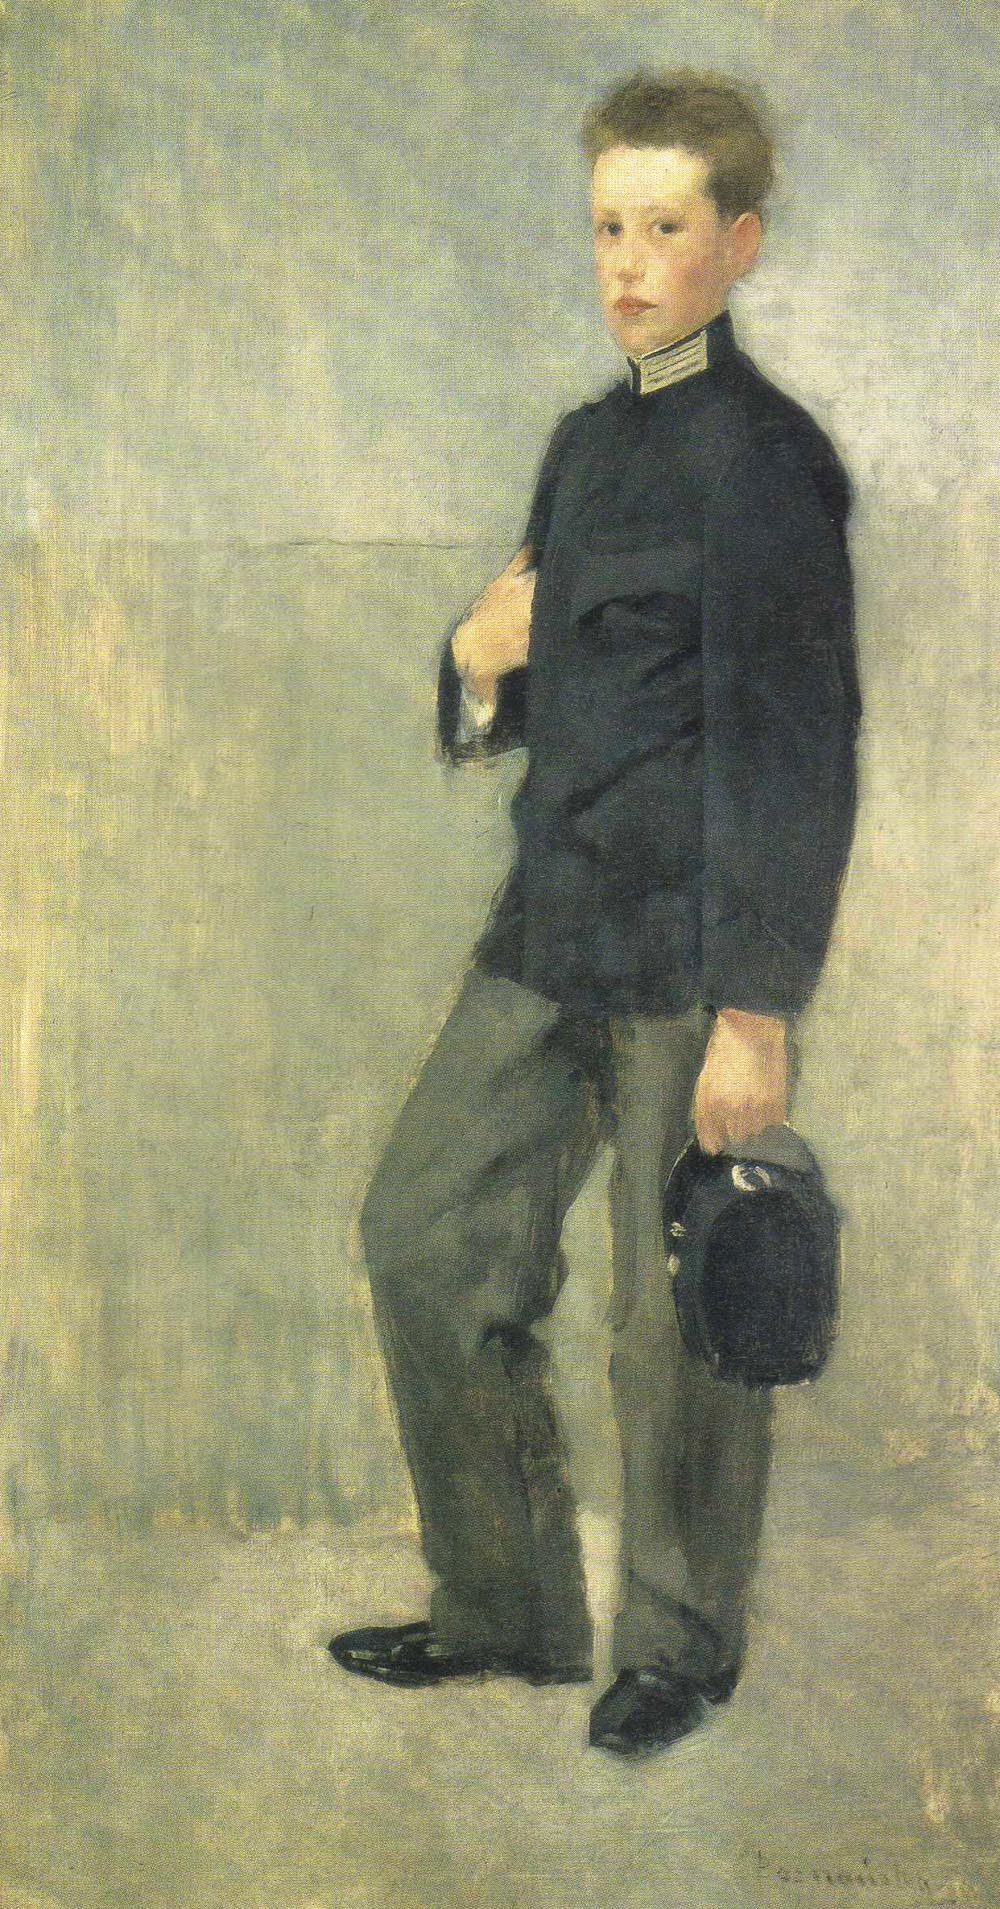 Portrait of a School Boy